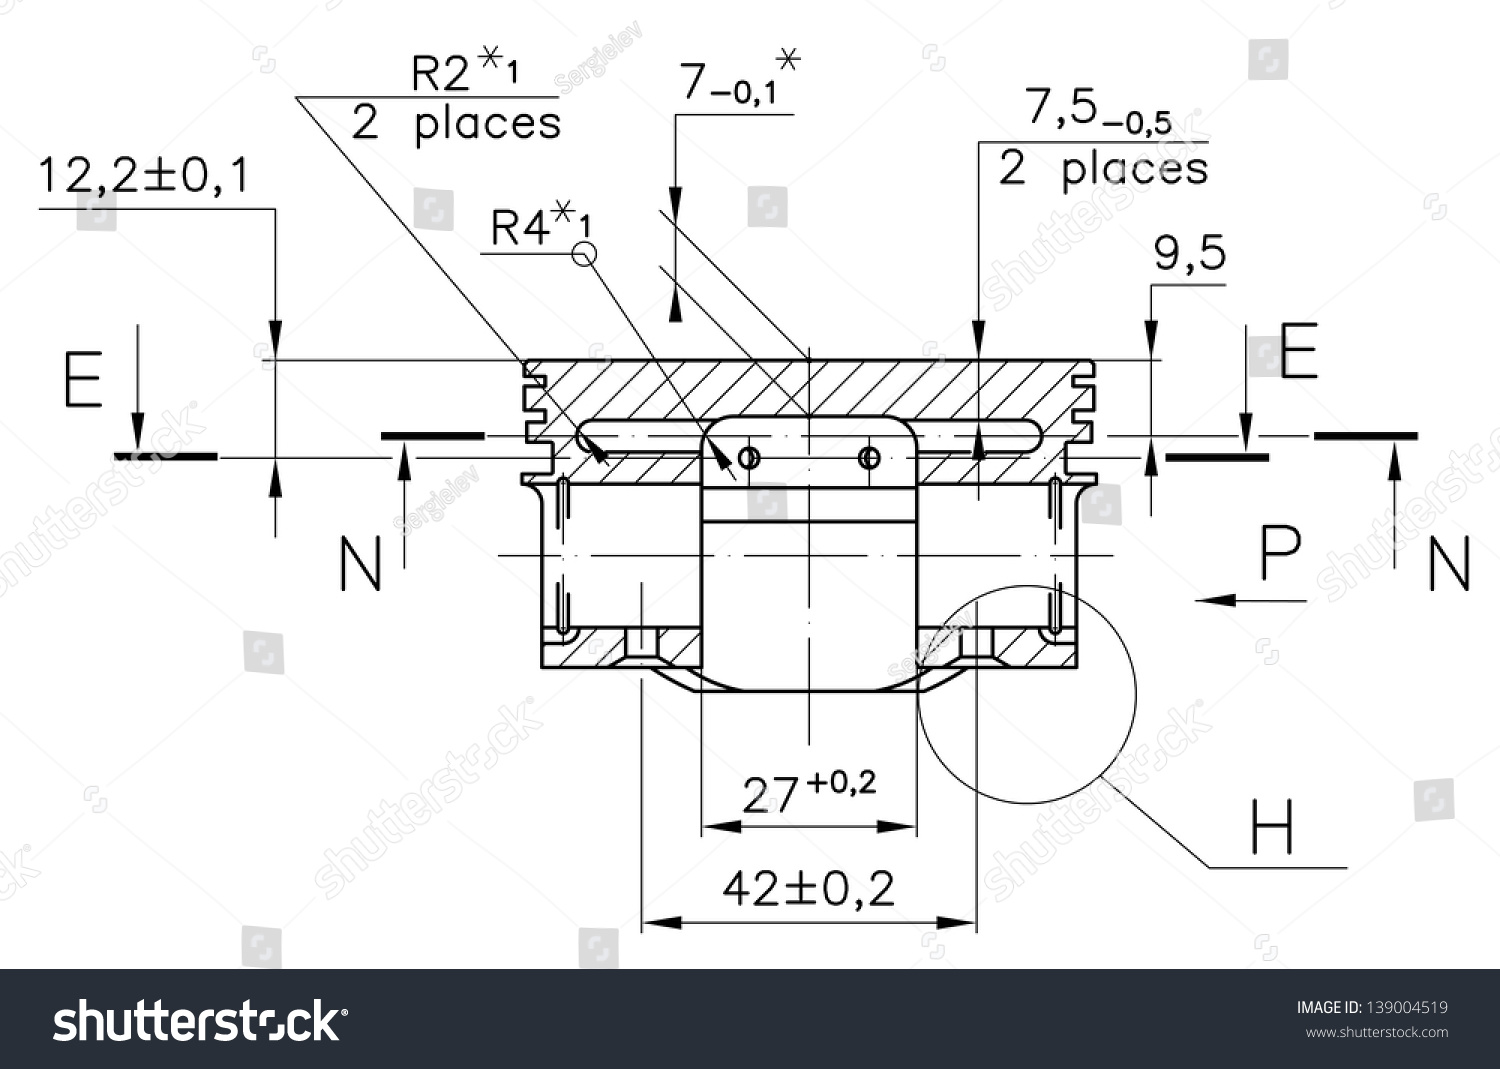 hight resolution of design drawings of nonexistent internal combustion engine piston clipping path